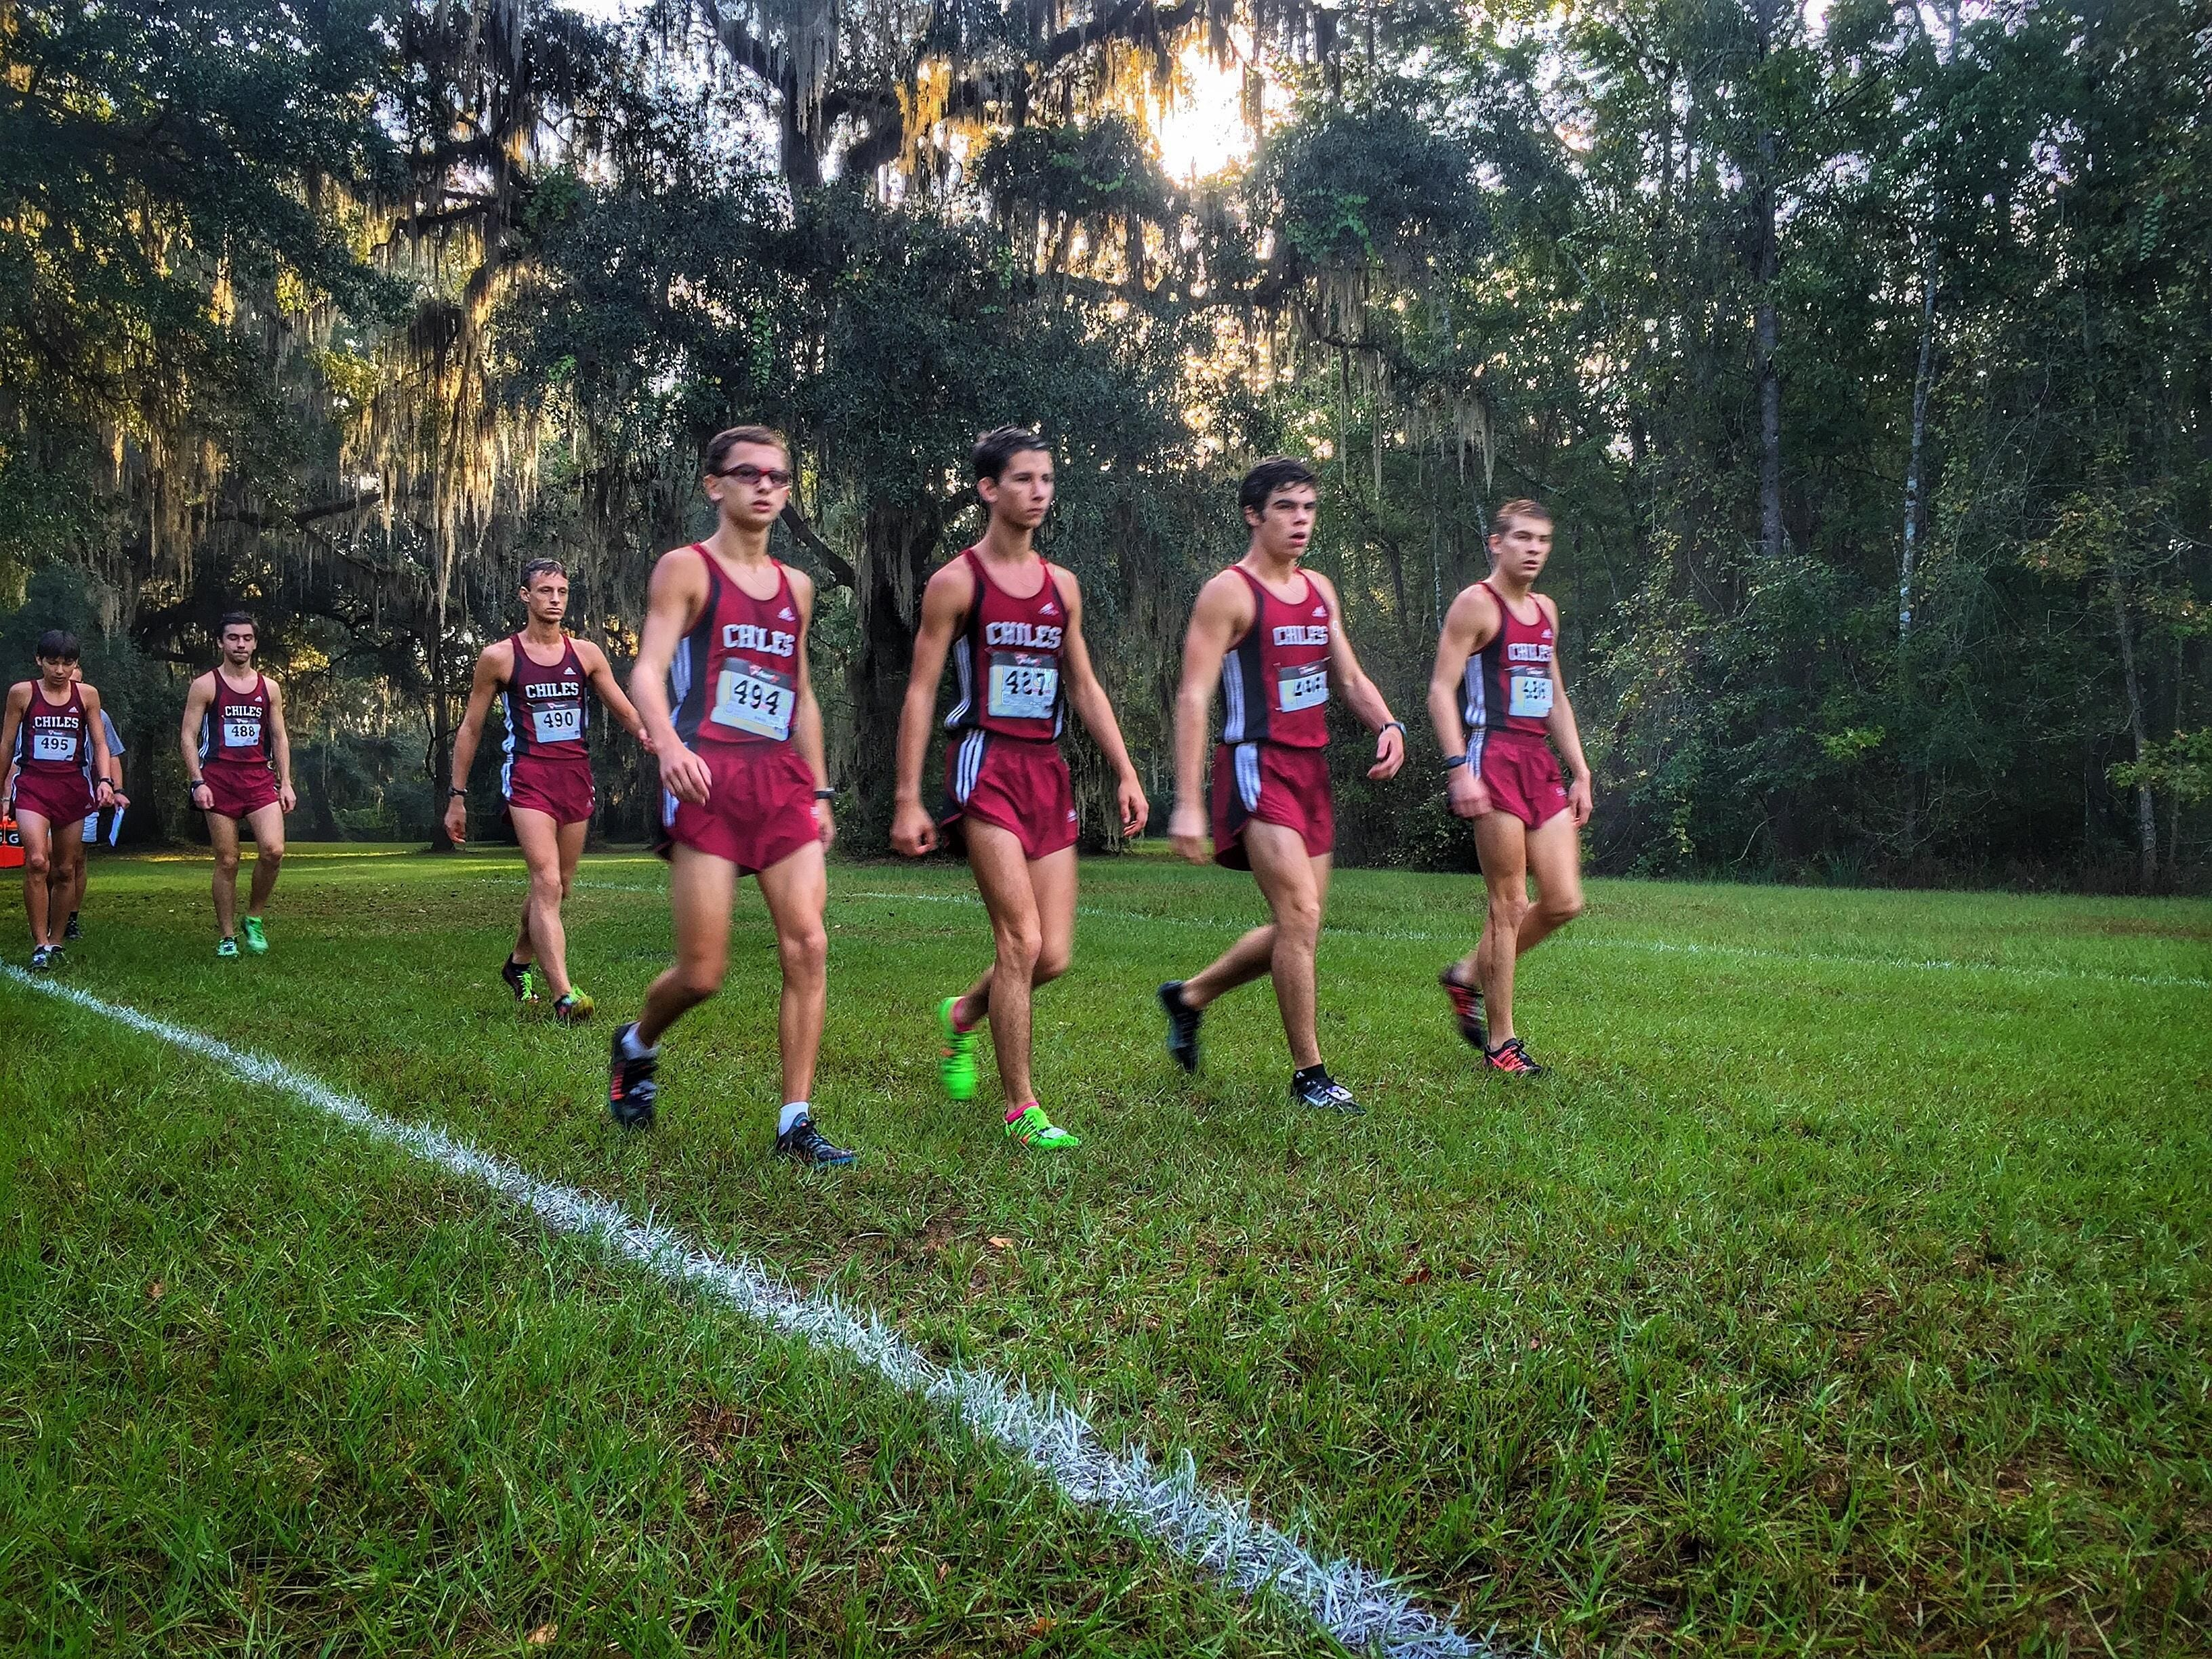 Chiles' boys cross country team walks towards the starting line during Saturday's Region 1-3A meet at Alligator Lake in Lake City. The Timberwolves finished as the region runner-up, setting up their return to the state meet where they will defend their back-to-back state titles.